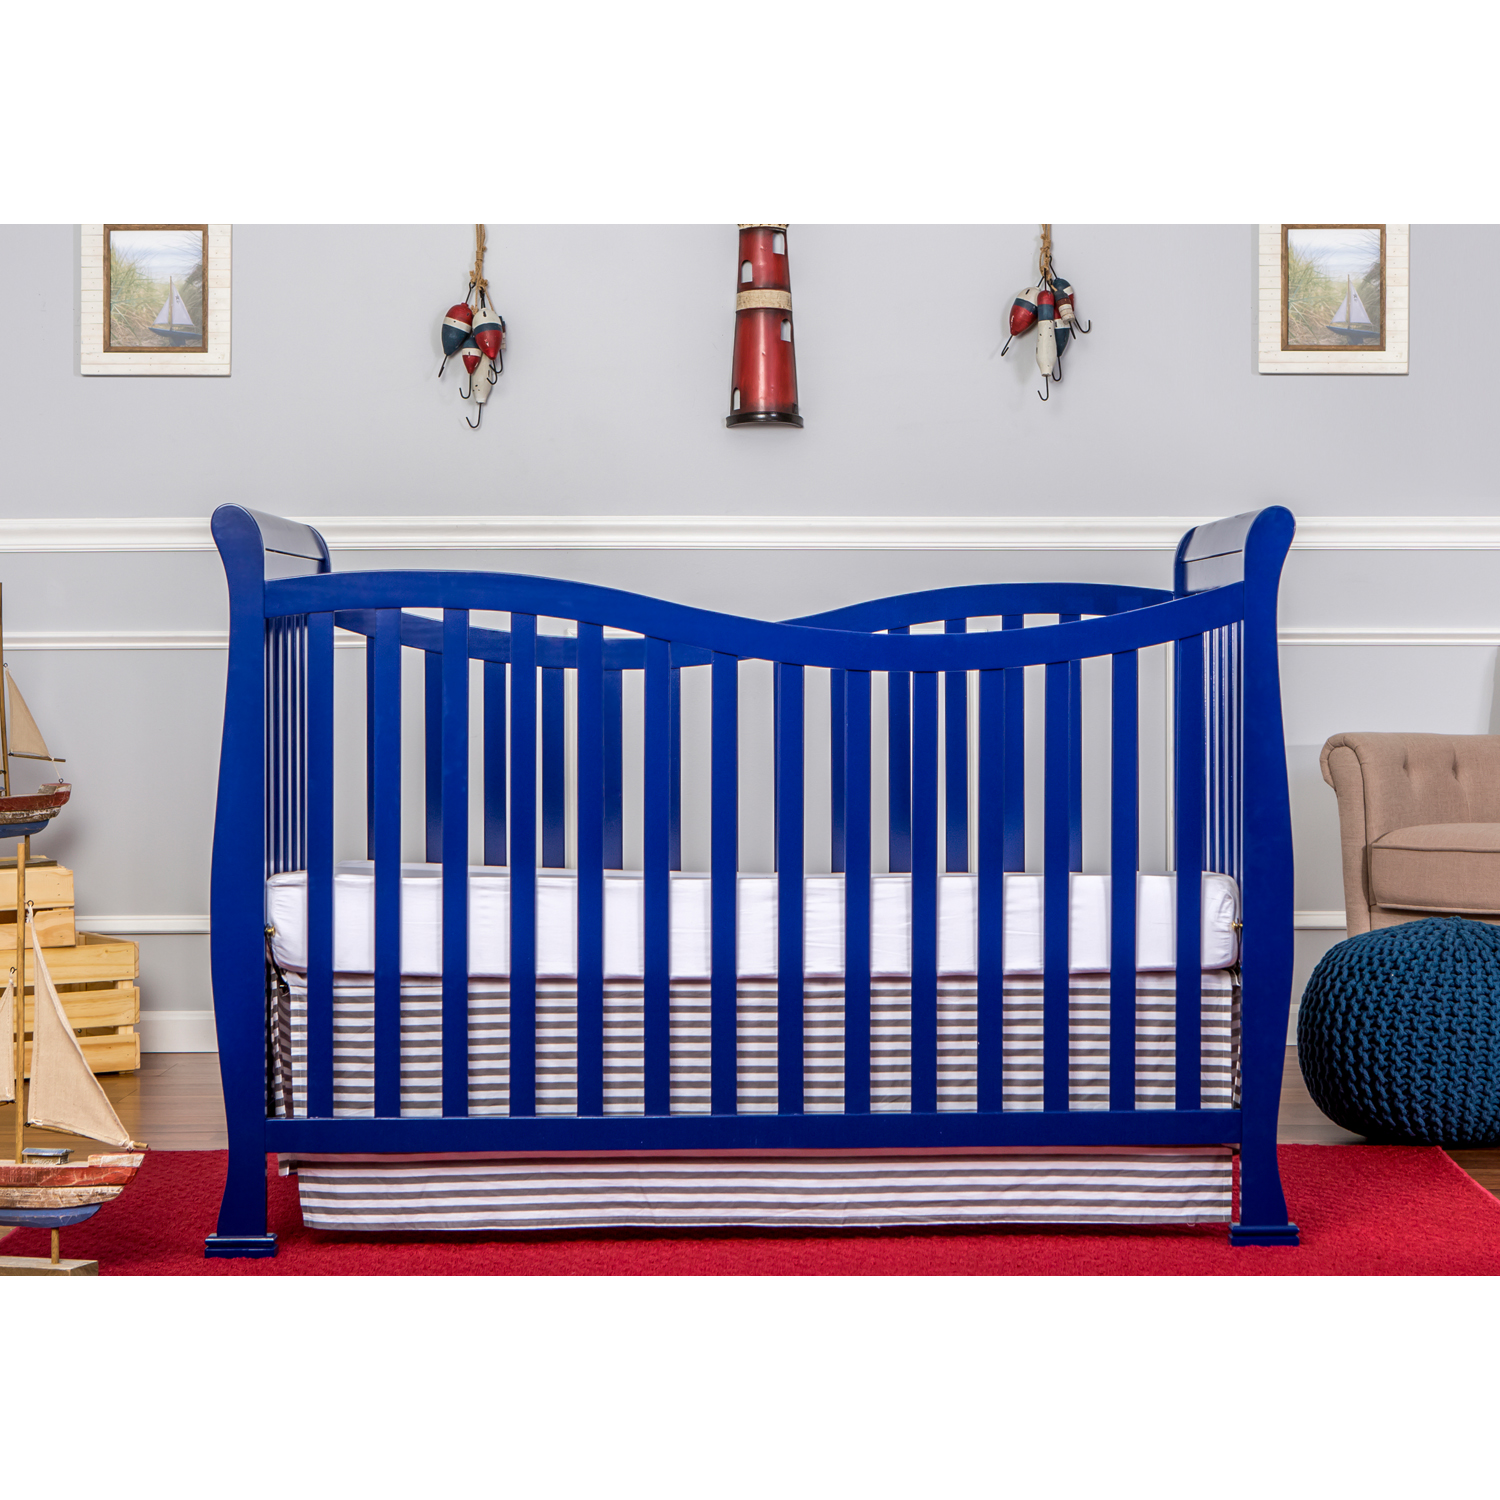 Violet 7-in-1 Convertible Life Style Crib | Dream On Me